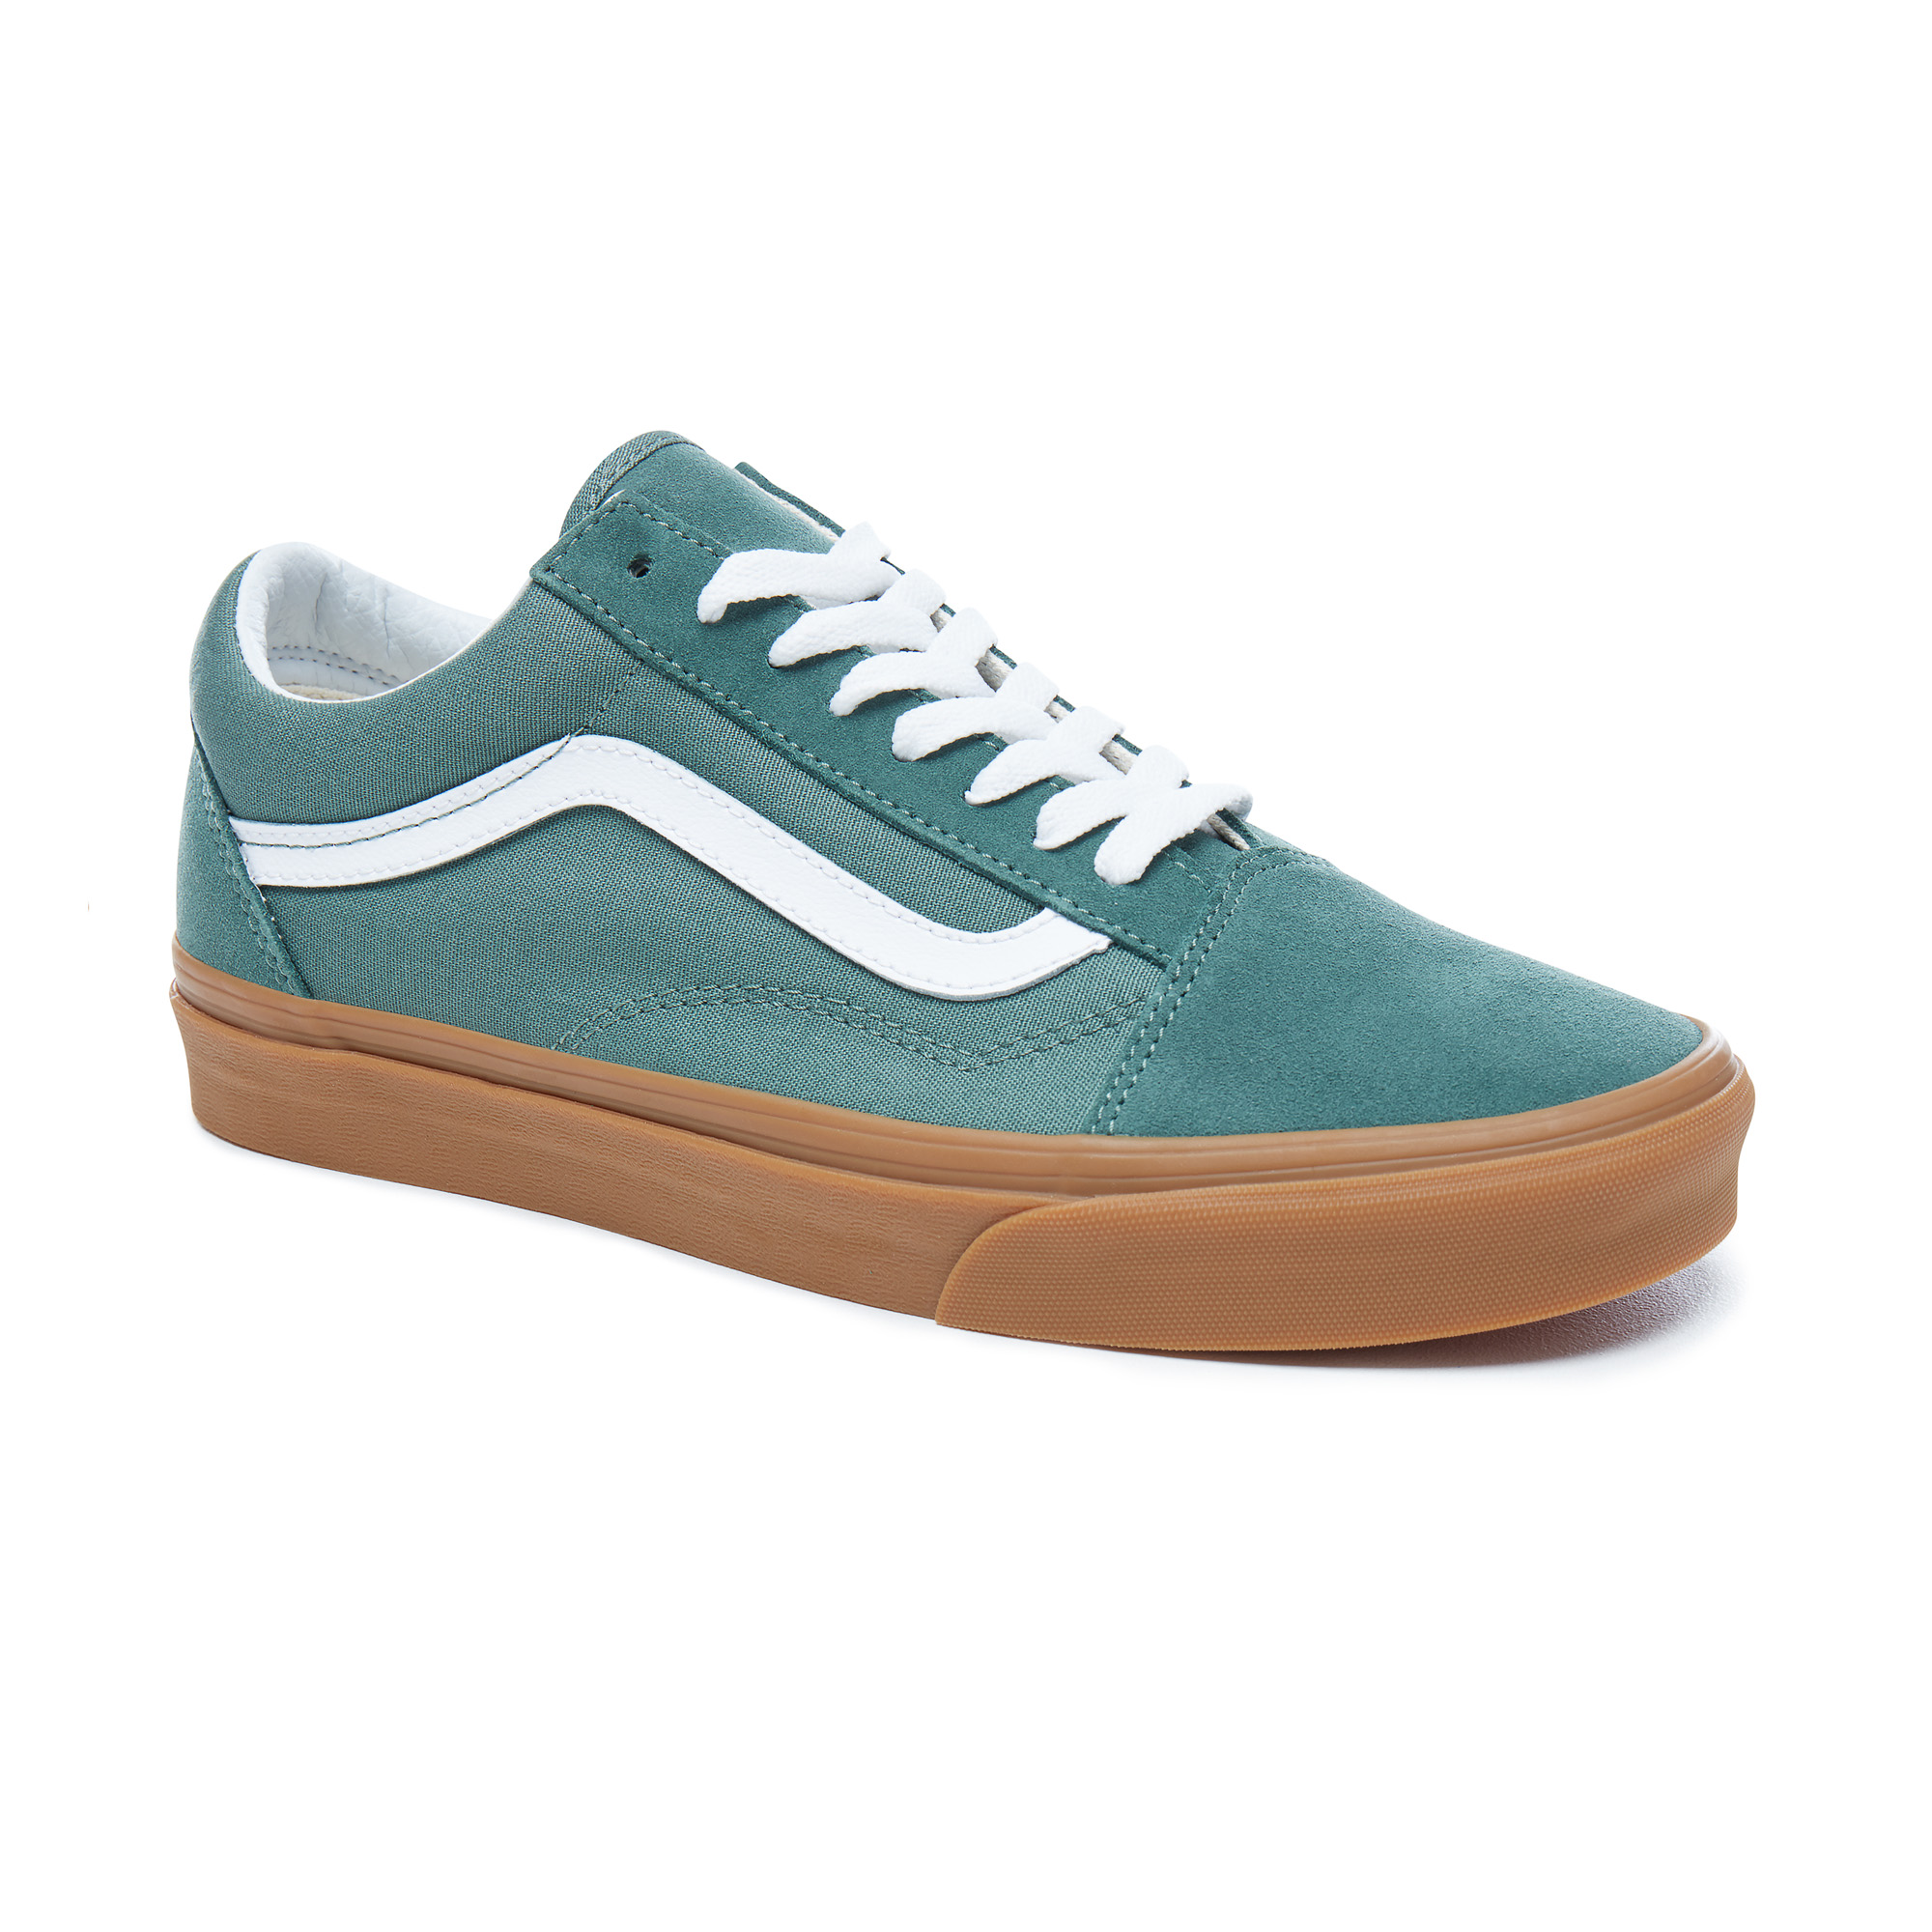 Boty Vans Old Skool - Duck Green GumOld skool duck green gum. Loading zoom 90ba503d798